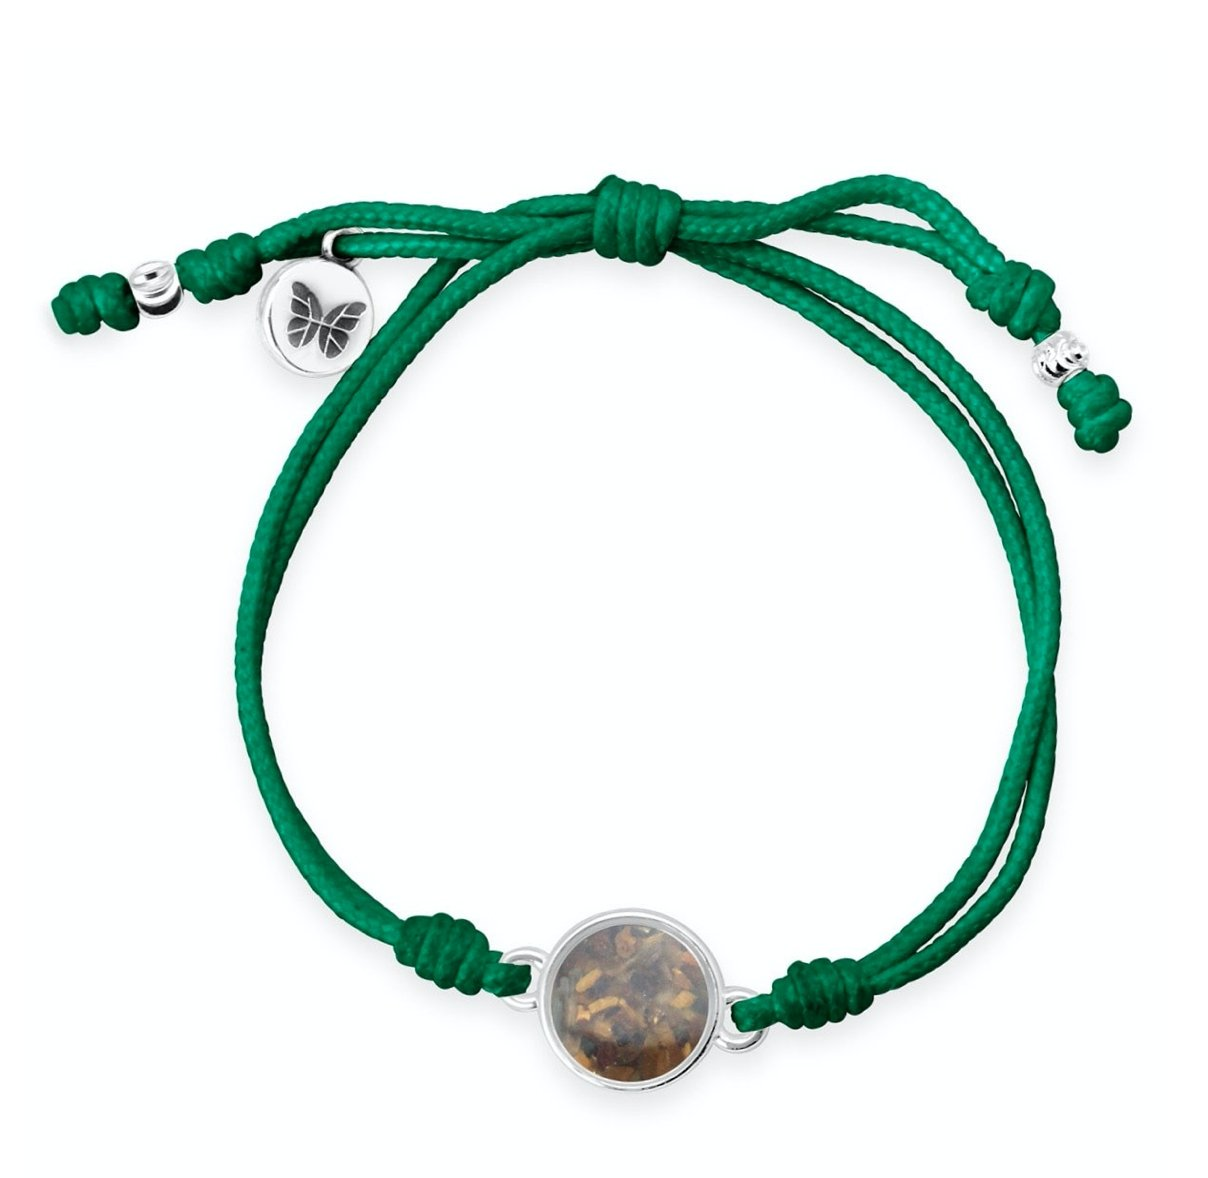 TTW GREEN BUTTERFLY BRACELET/RAINFOREST - Molly's! A Chic and Unique Boutique